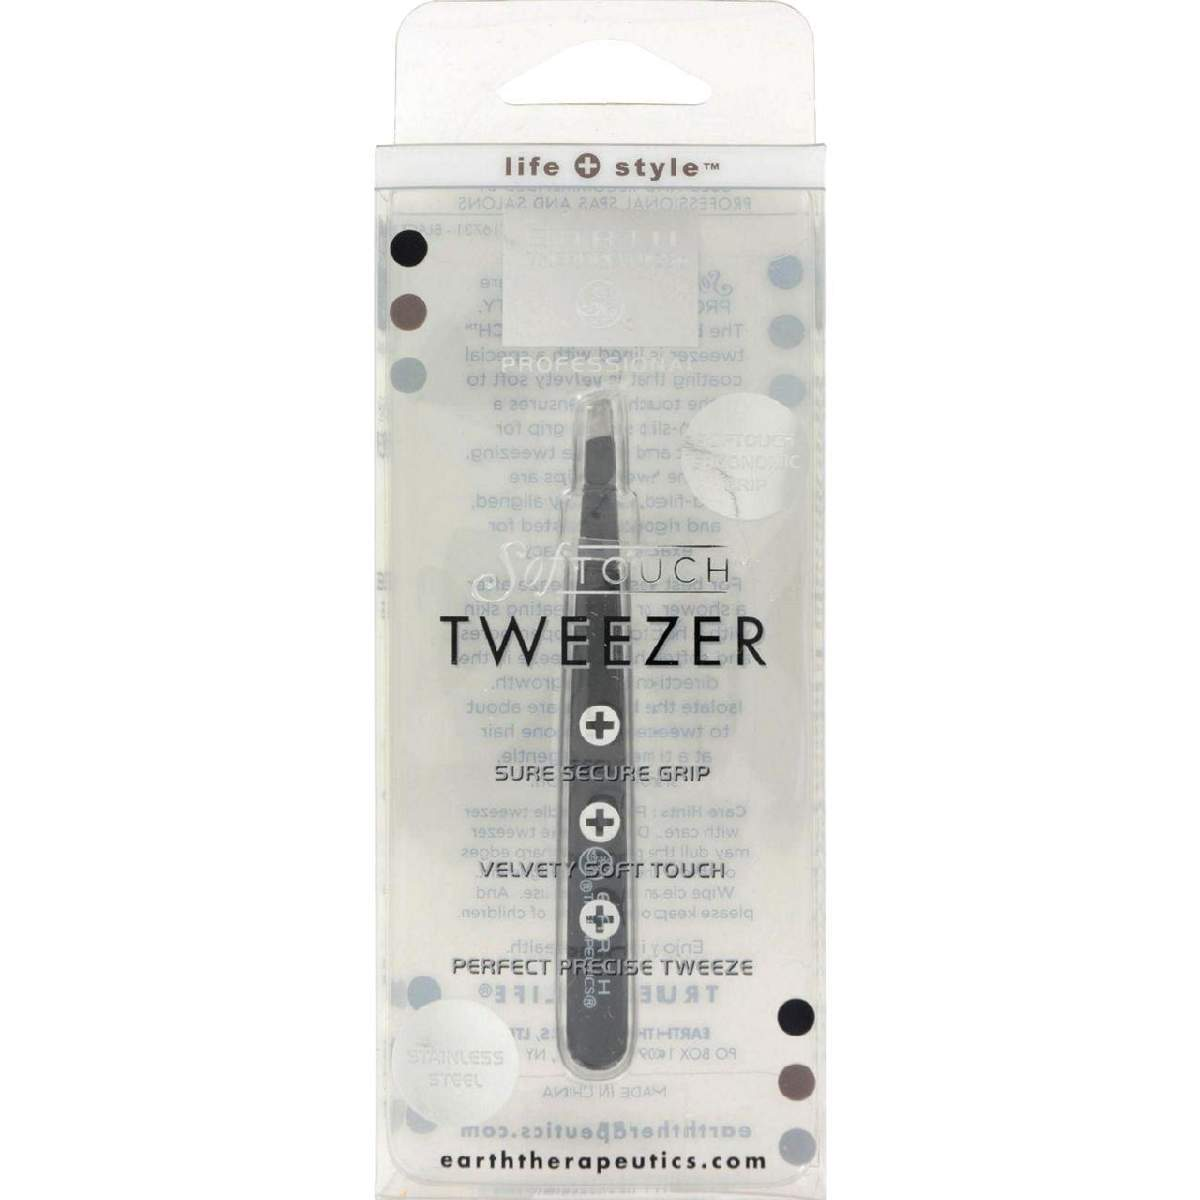 Earth Therapeutics Softouch Tweezer Black - 1 Unit